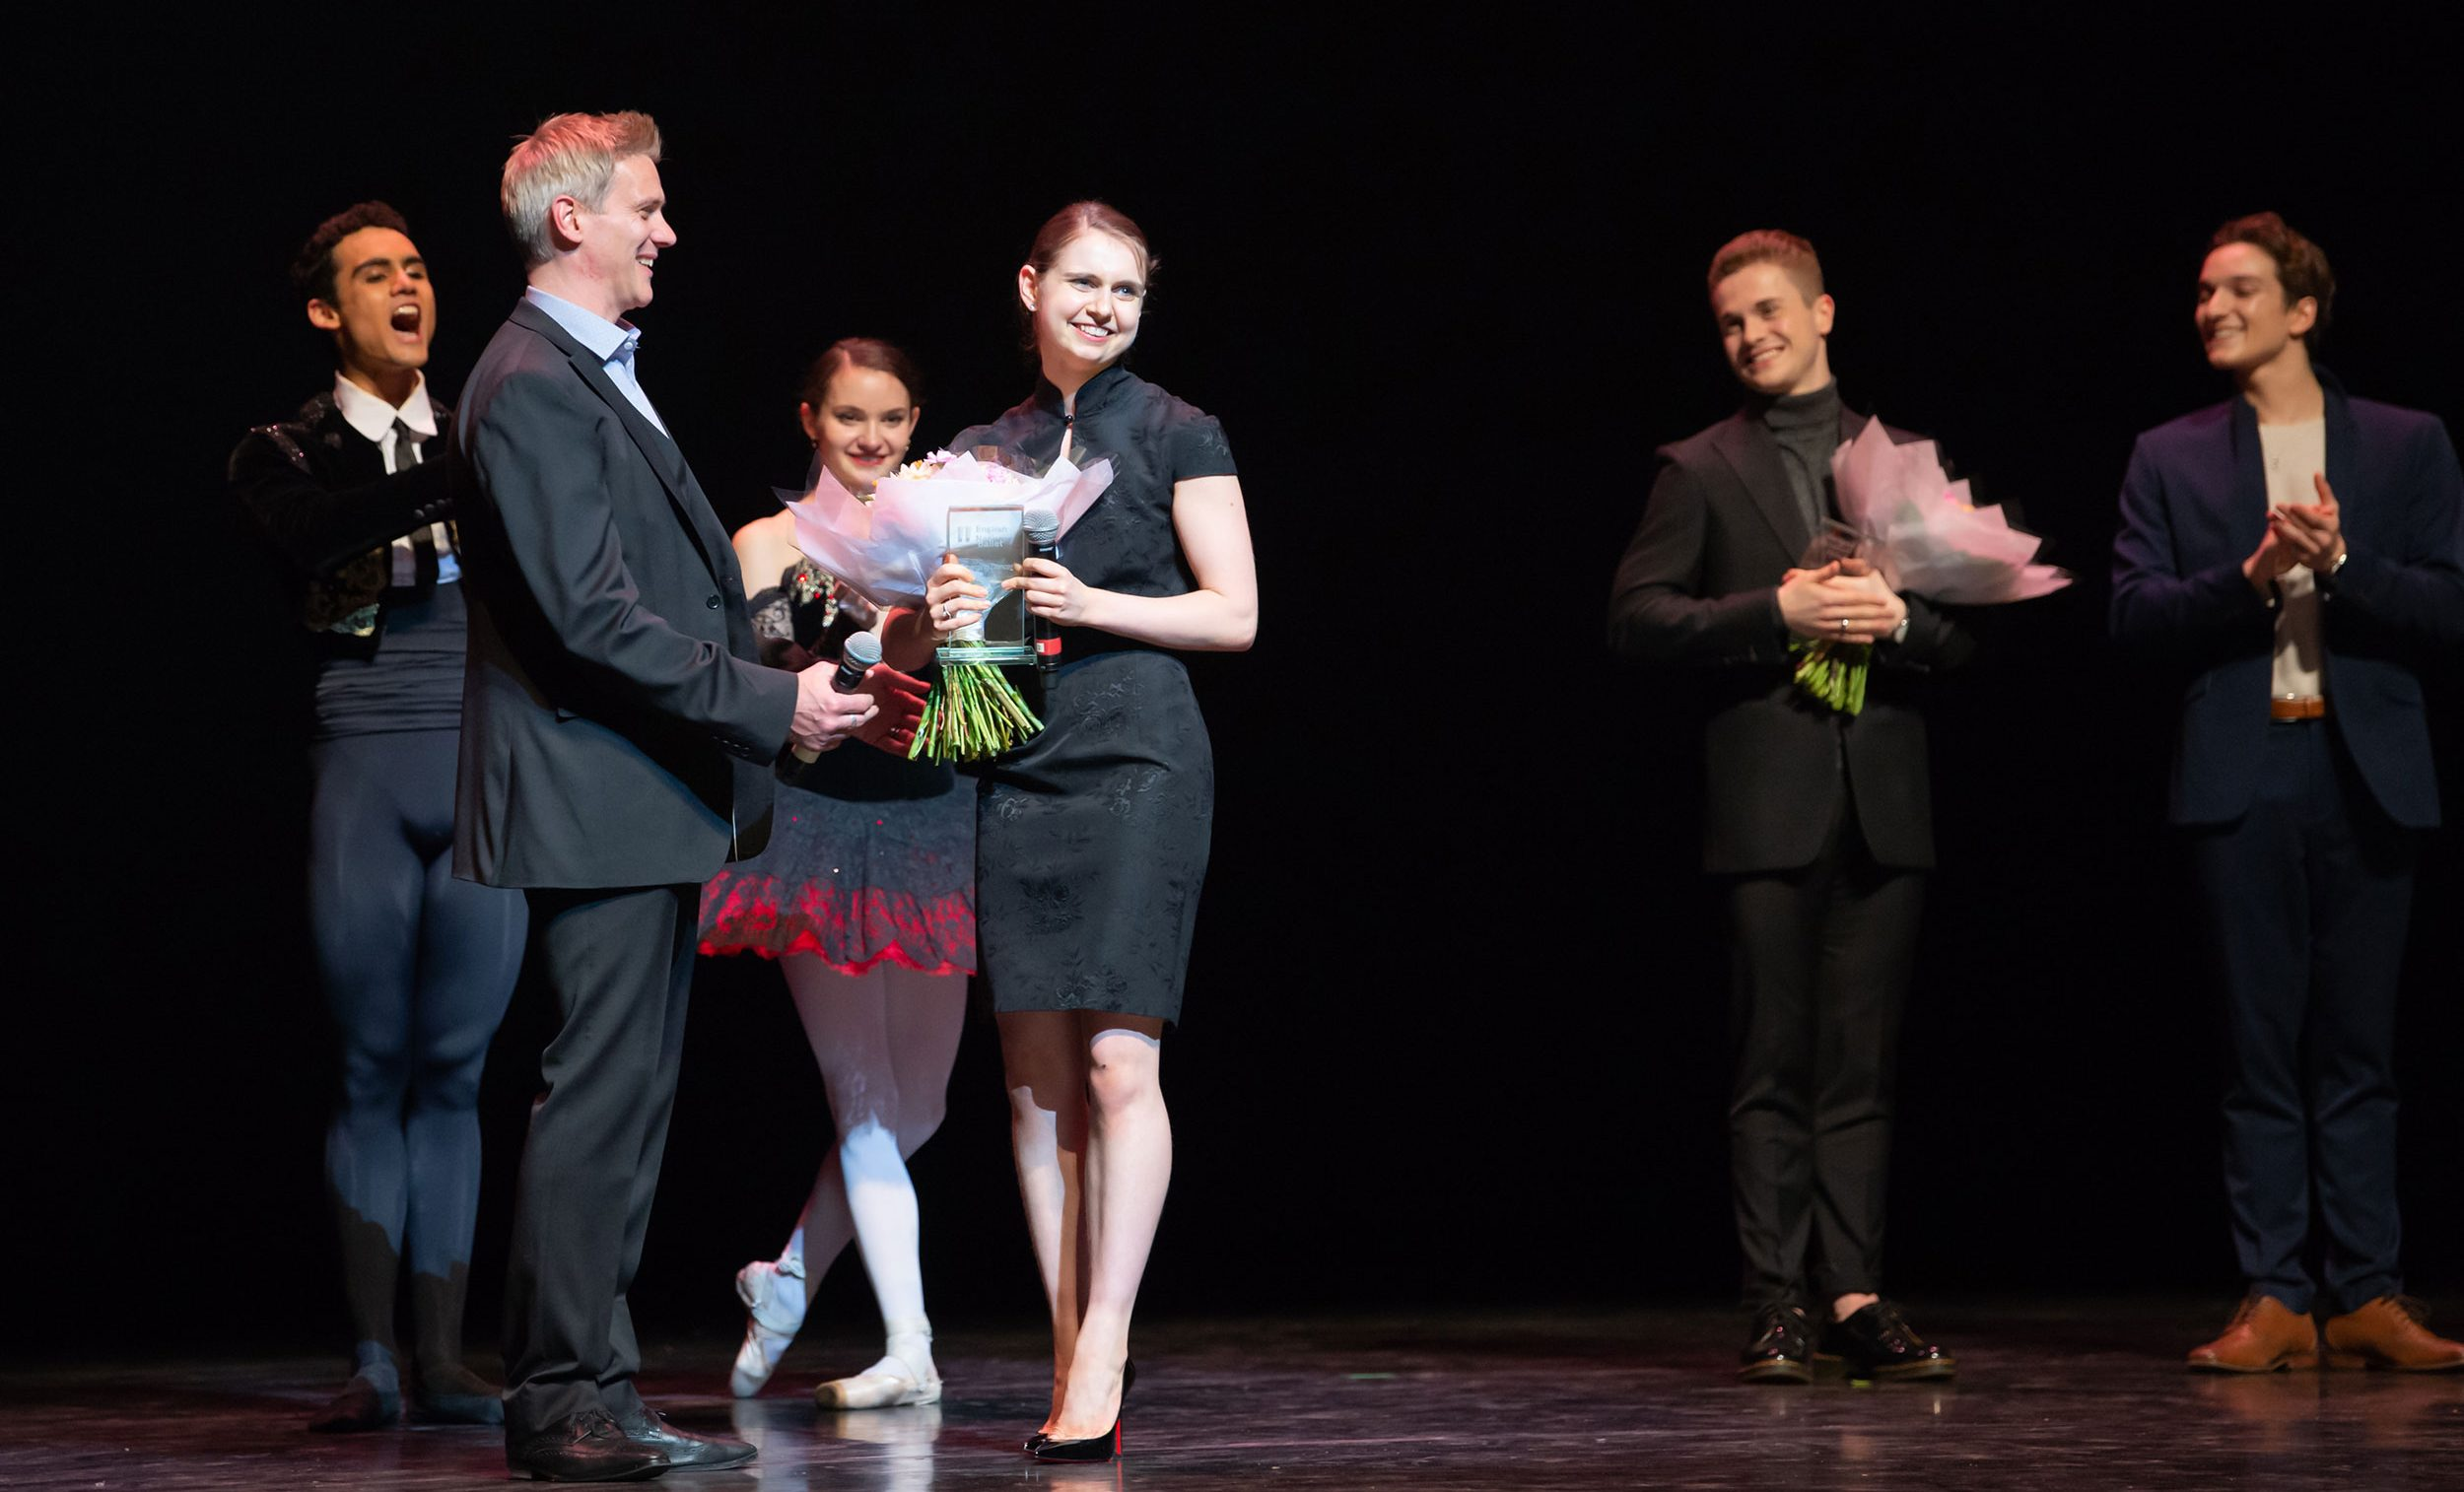 111981ec7 Julia Conway is the winner of Emerging Dancer 2019 - English ...